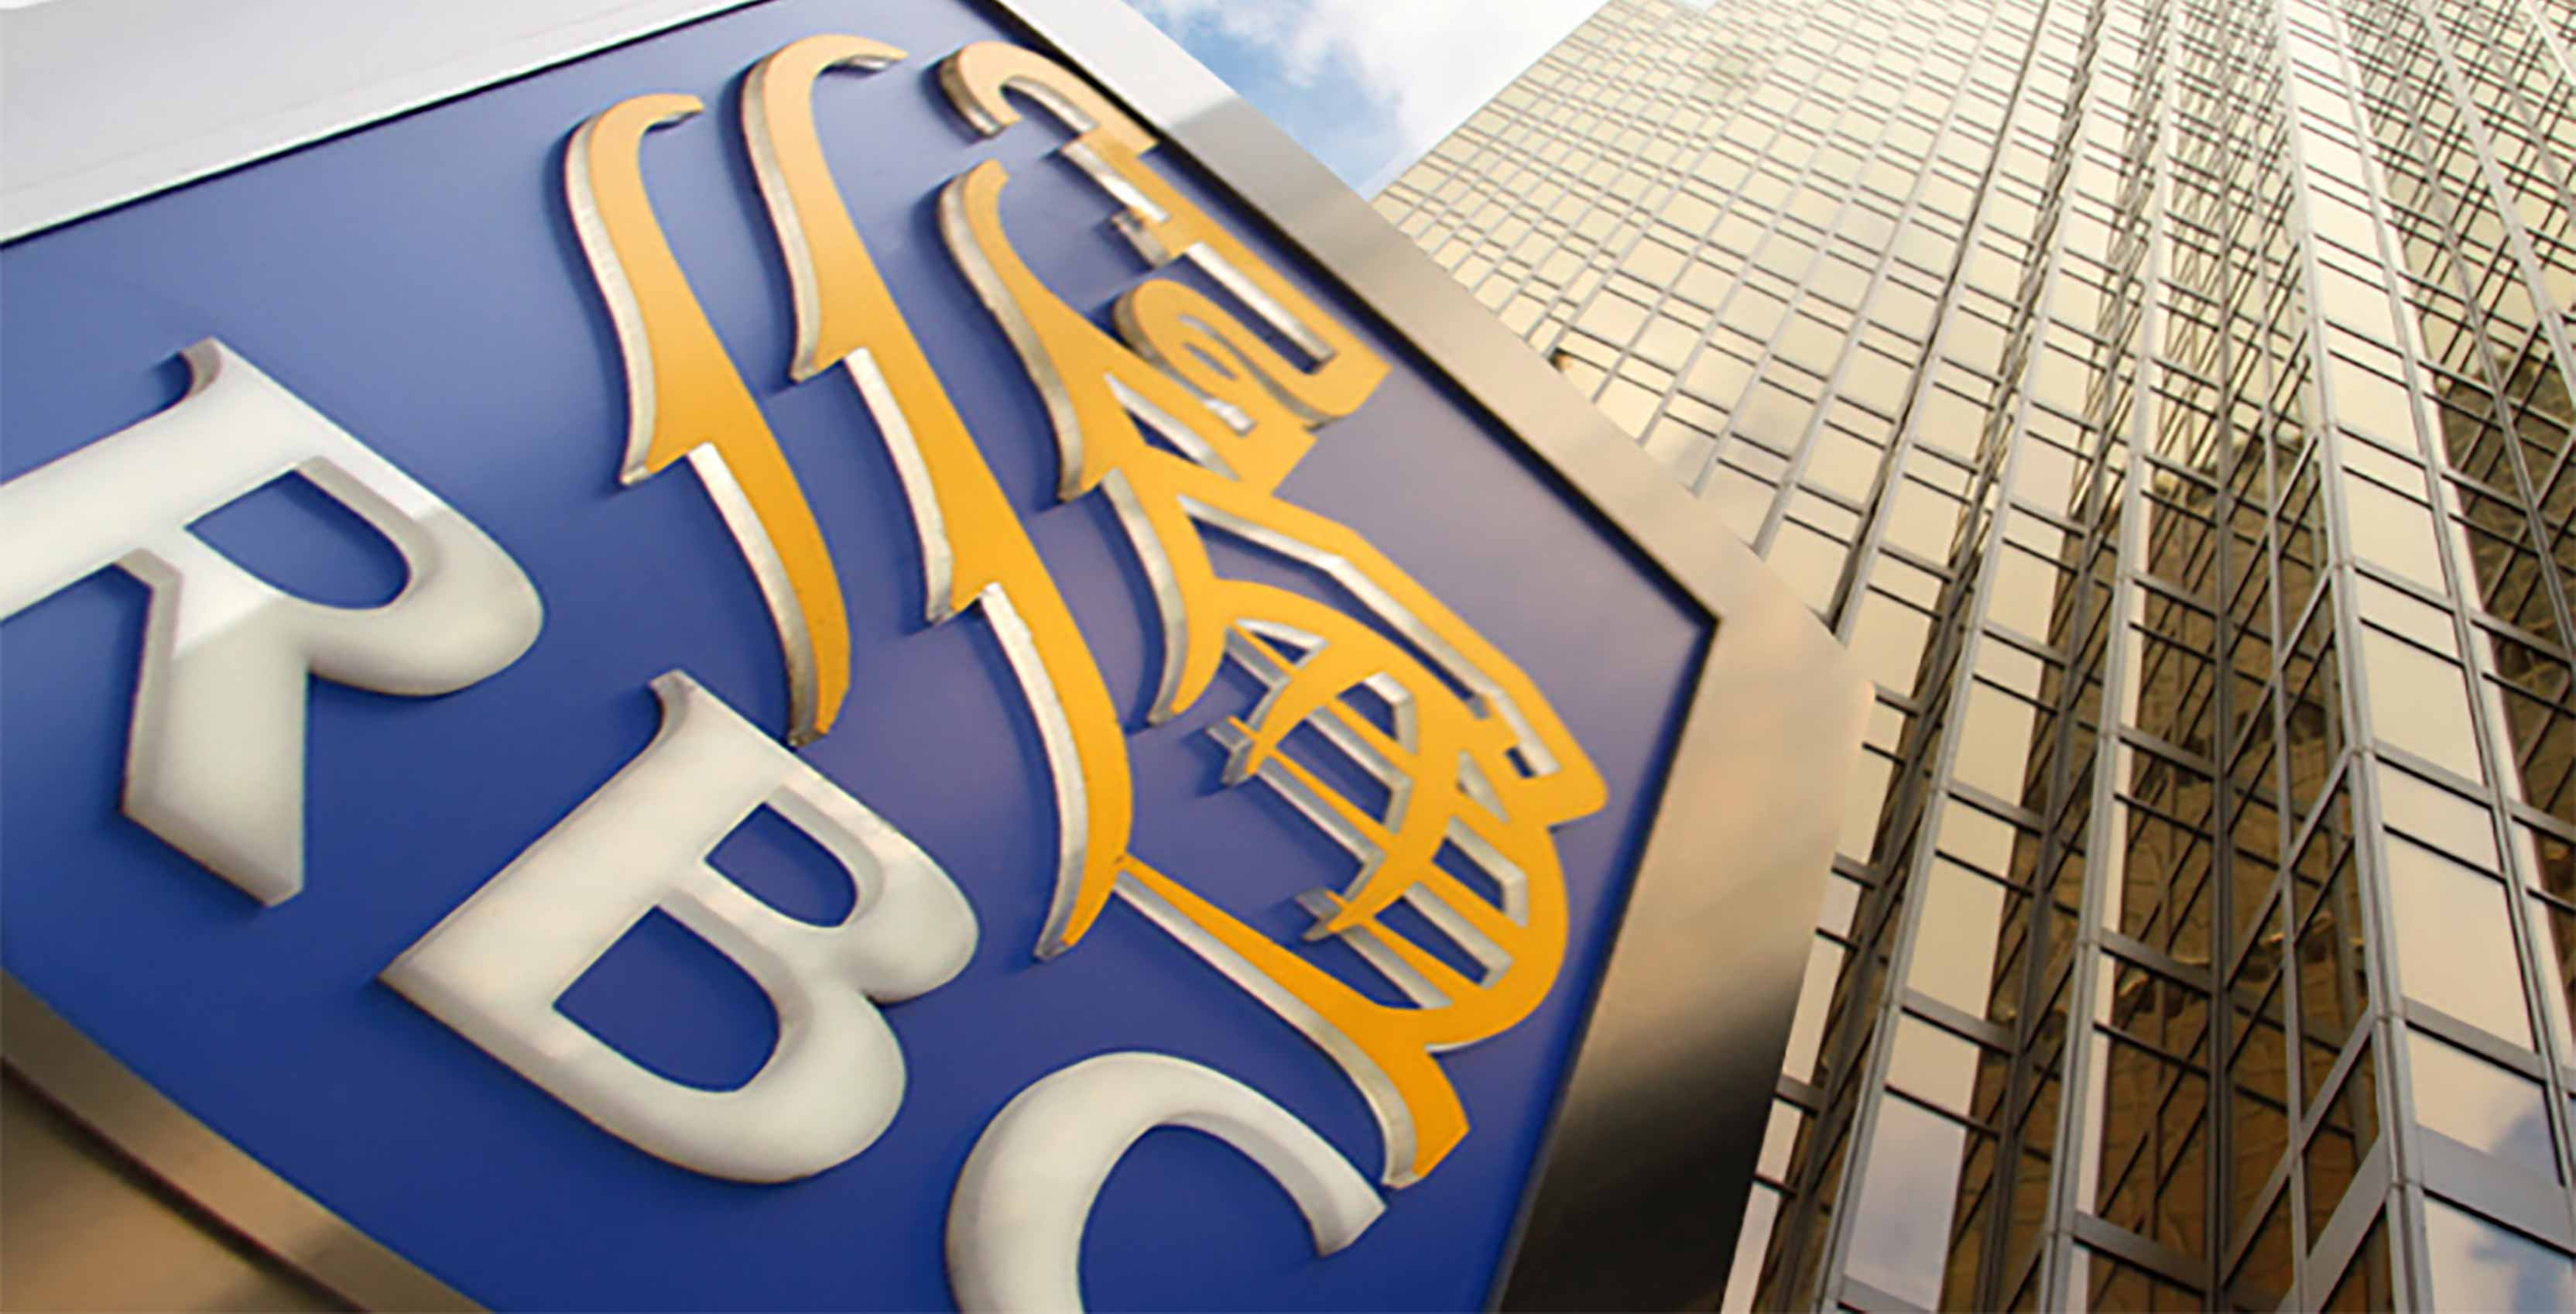 RBC sign in front of building